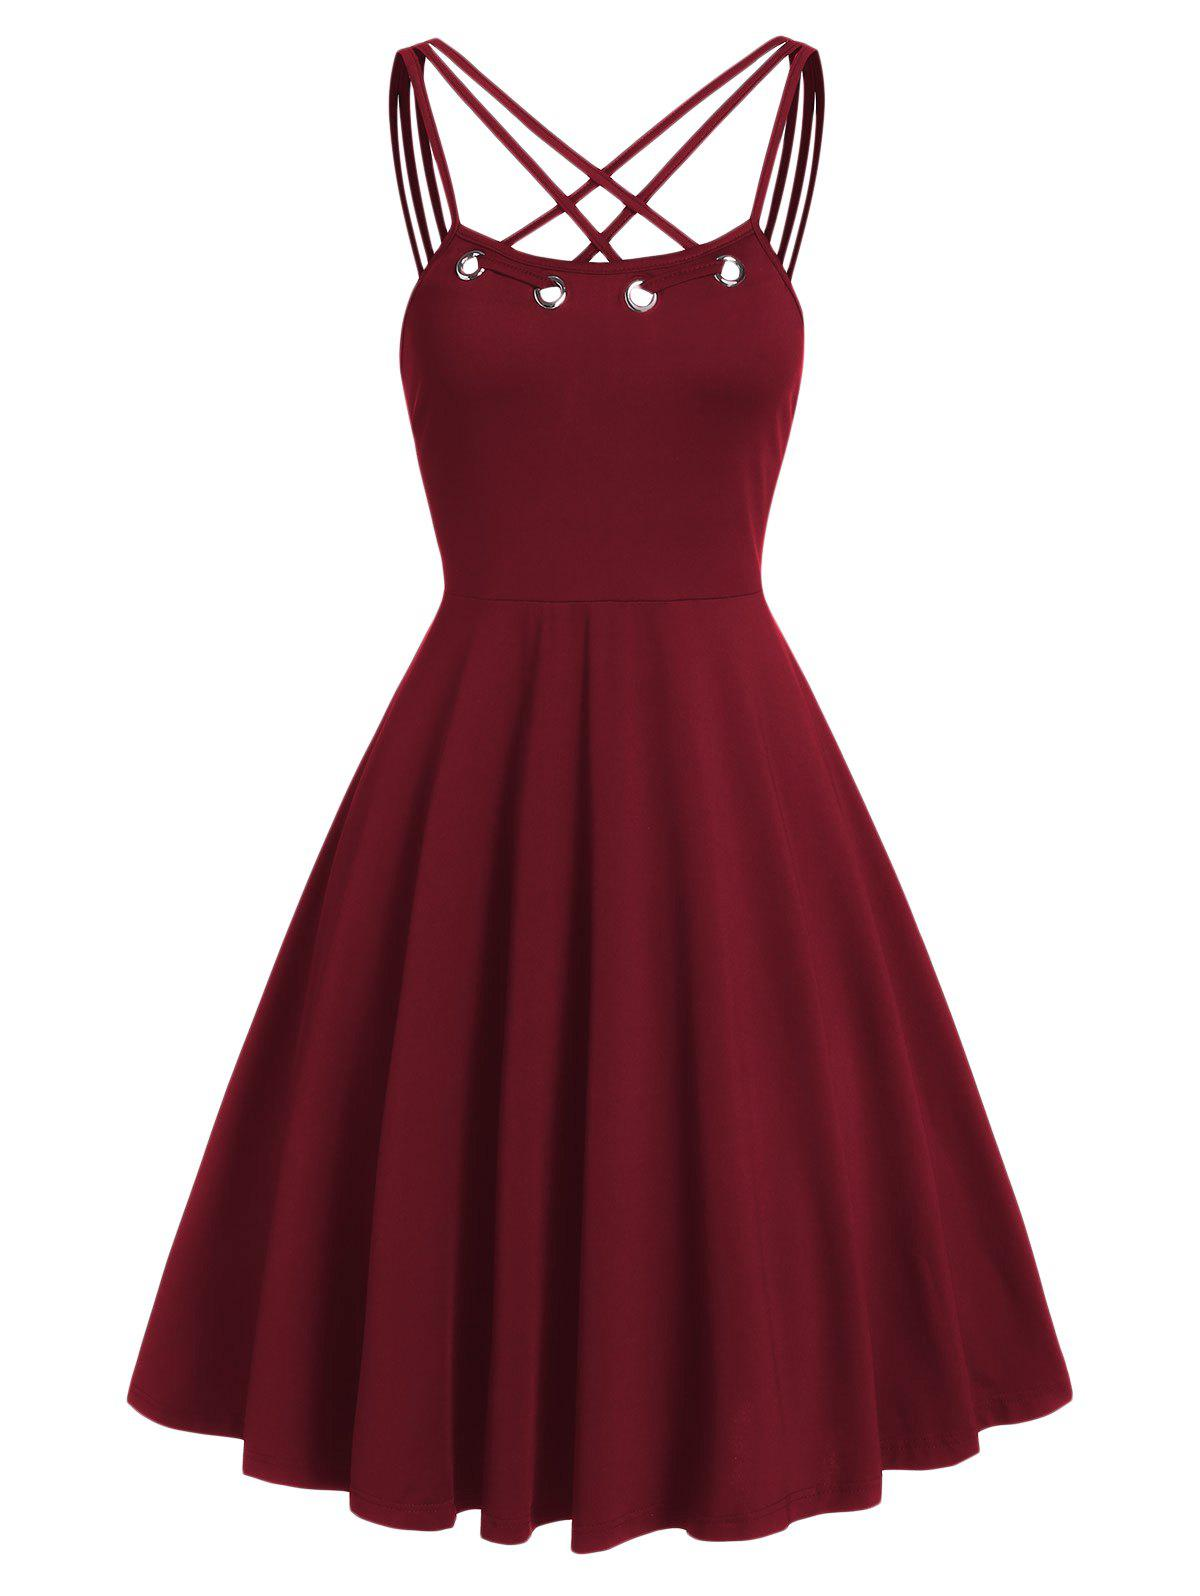 Strap Collar Fit And Flare Dress - RED WINE S